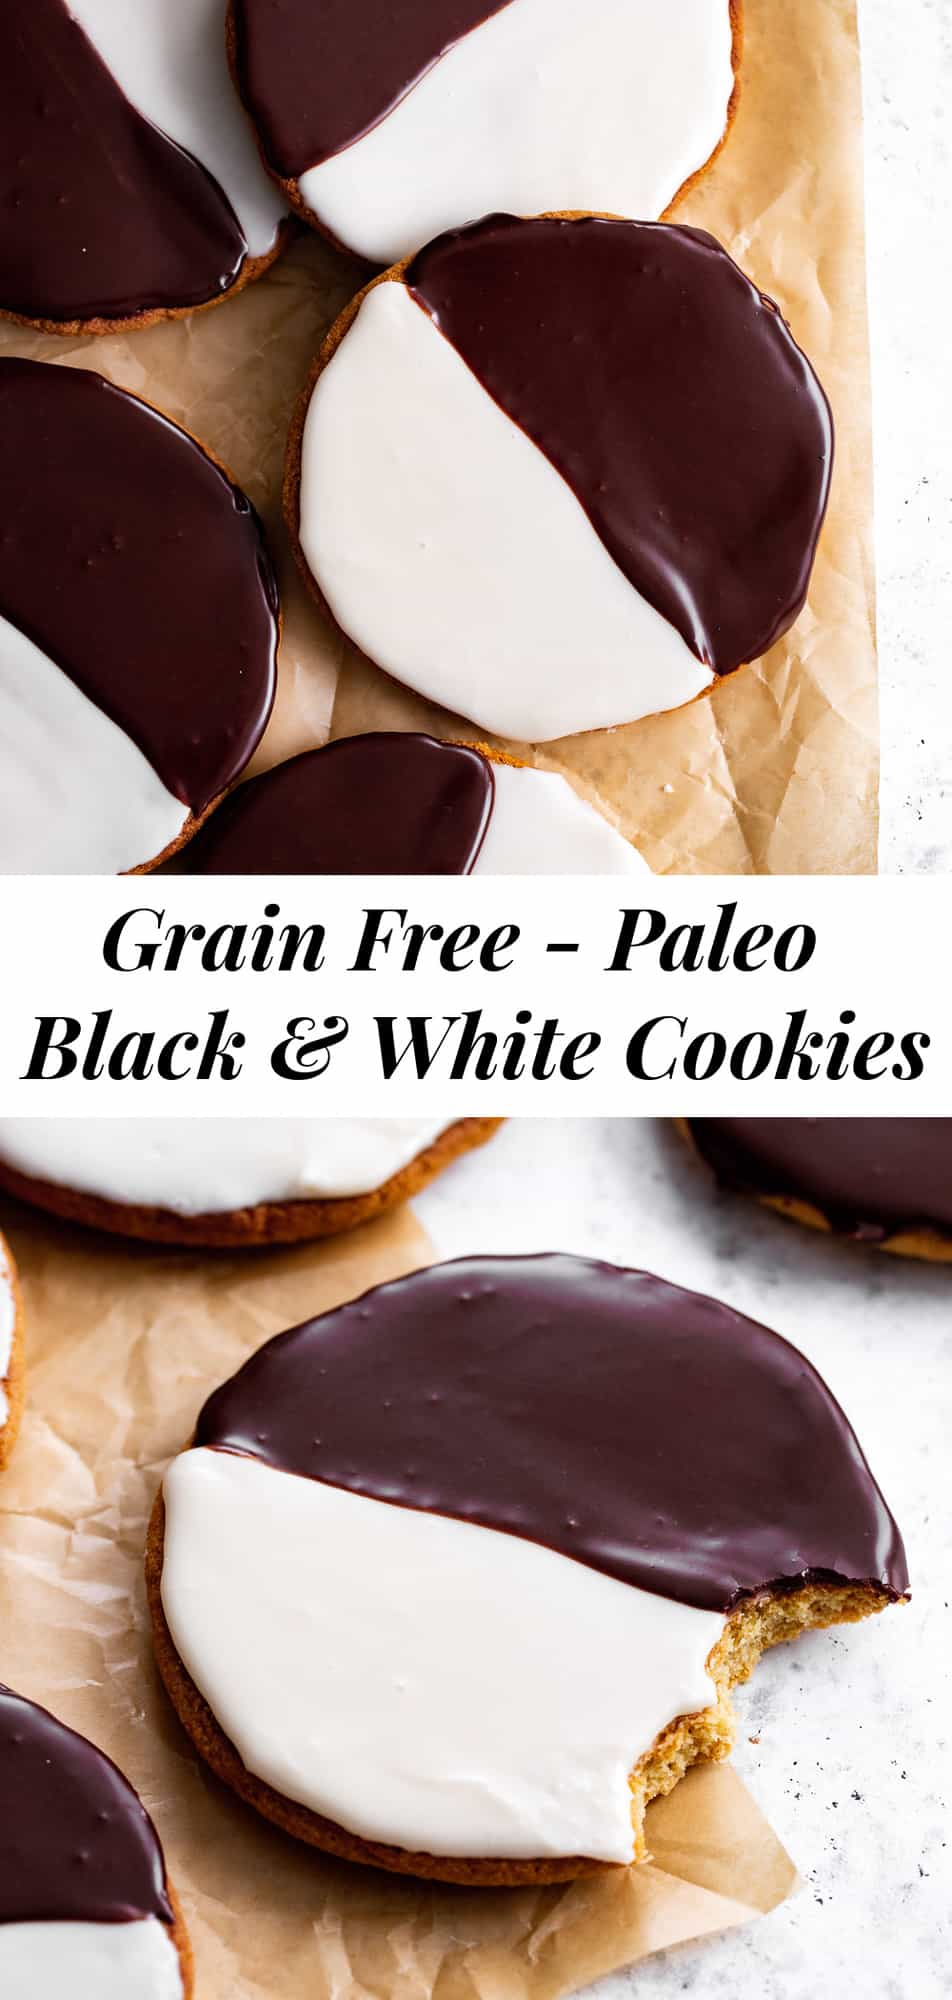 These homemade Black and White Cookies taste just like everyone's favorite New York City style bakery cookies - so much so that you'd never guess they're grain free! This gluten free and grain free cookie recipe has dairy free and paleo options so everyone can enjoy these classic cookies at home! #paleobaking #glutenfree #grainfree #paleo #cleaneating #glutenfreebaking #healthybaking